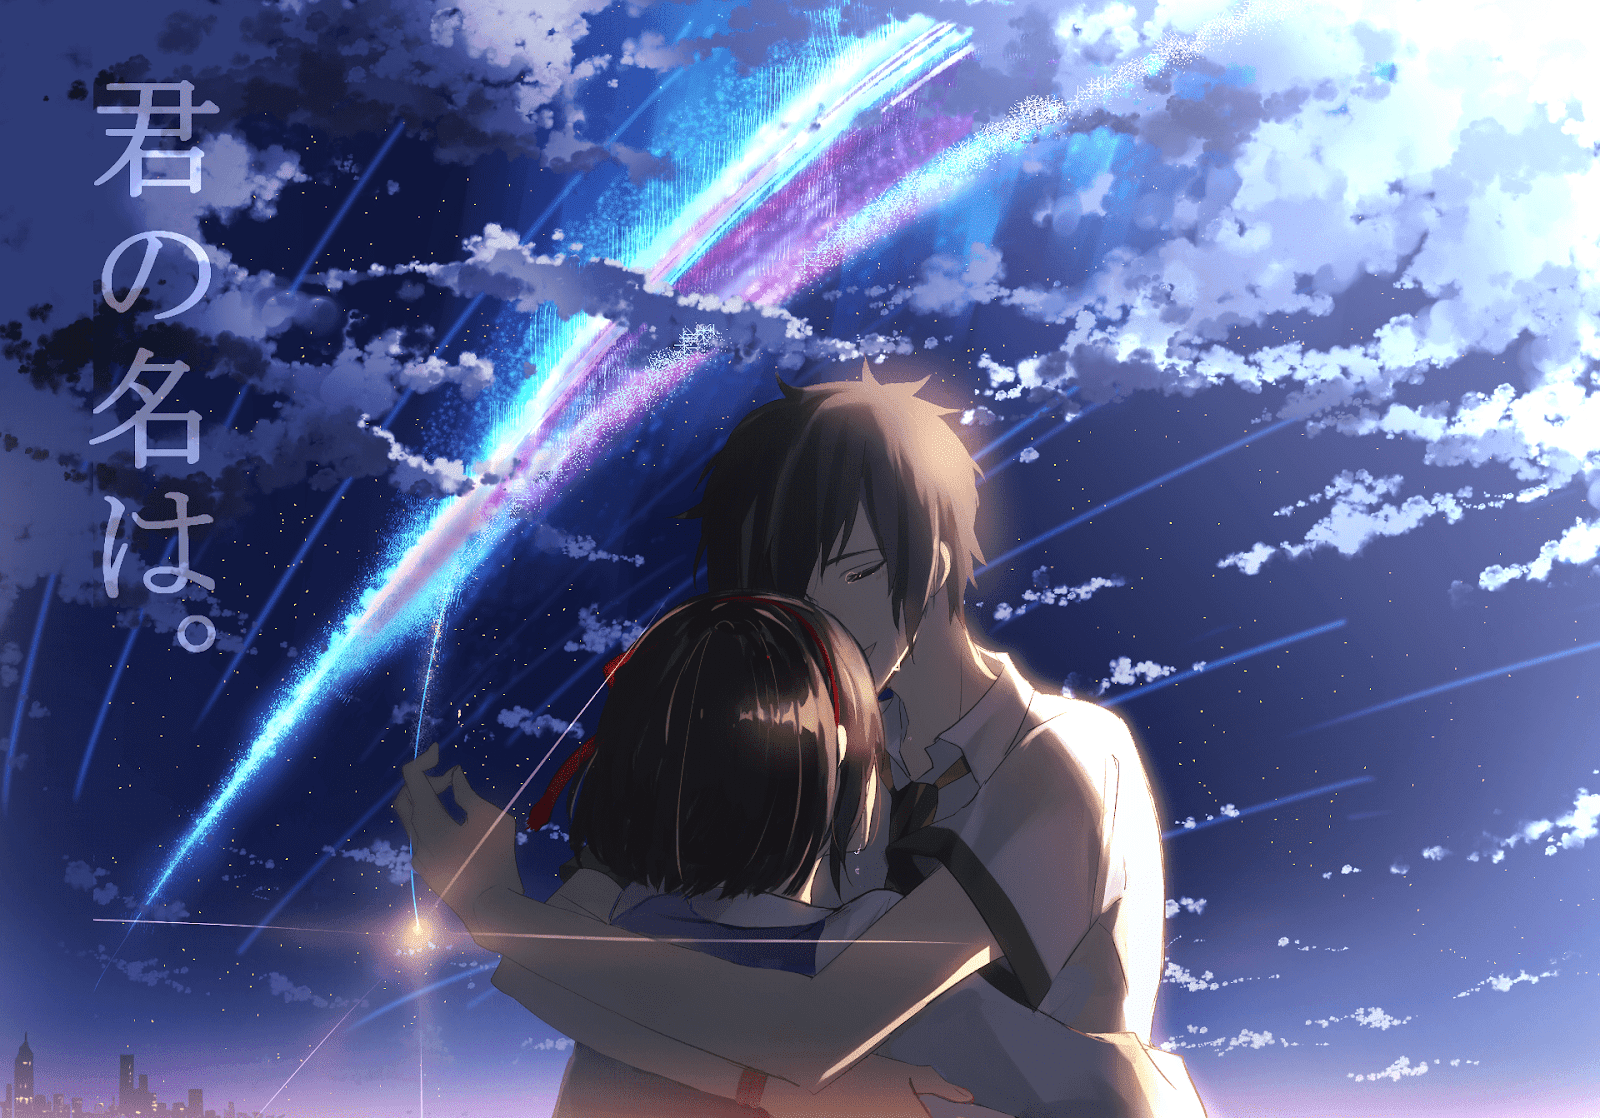 AowVN%2B%252828%2529 - [ Hình Nền ] Anime Your Name. - Kimi no Nawa full HD cực đẹp | Anime Wallpaper